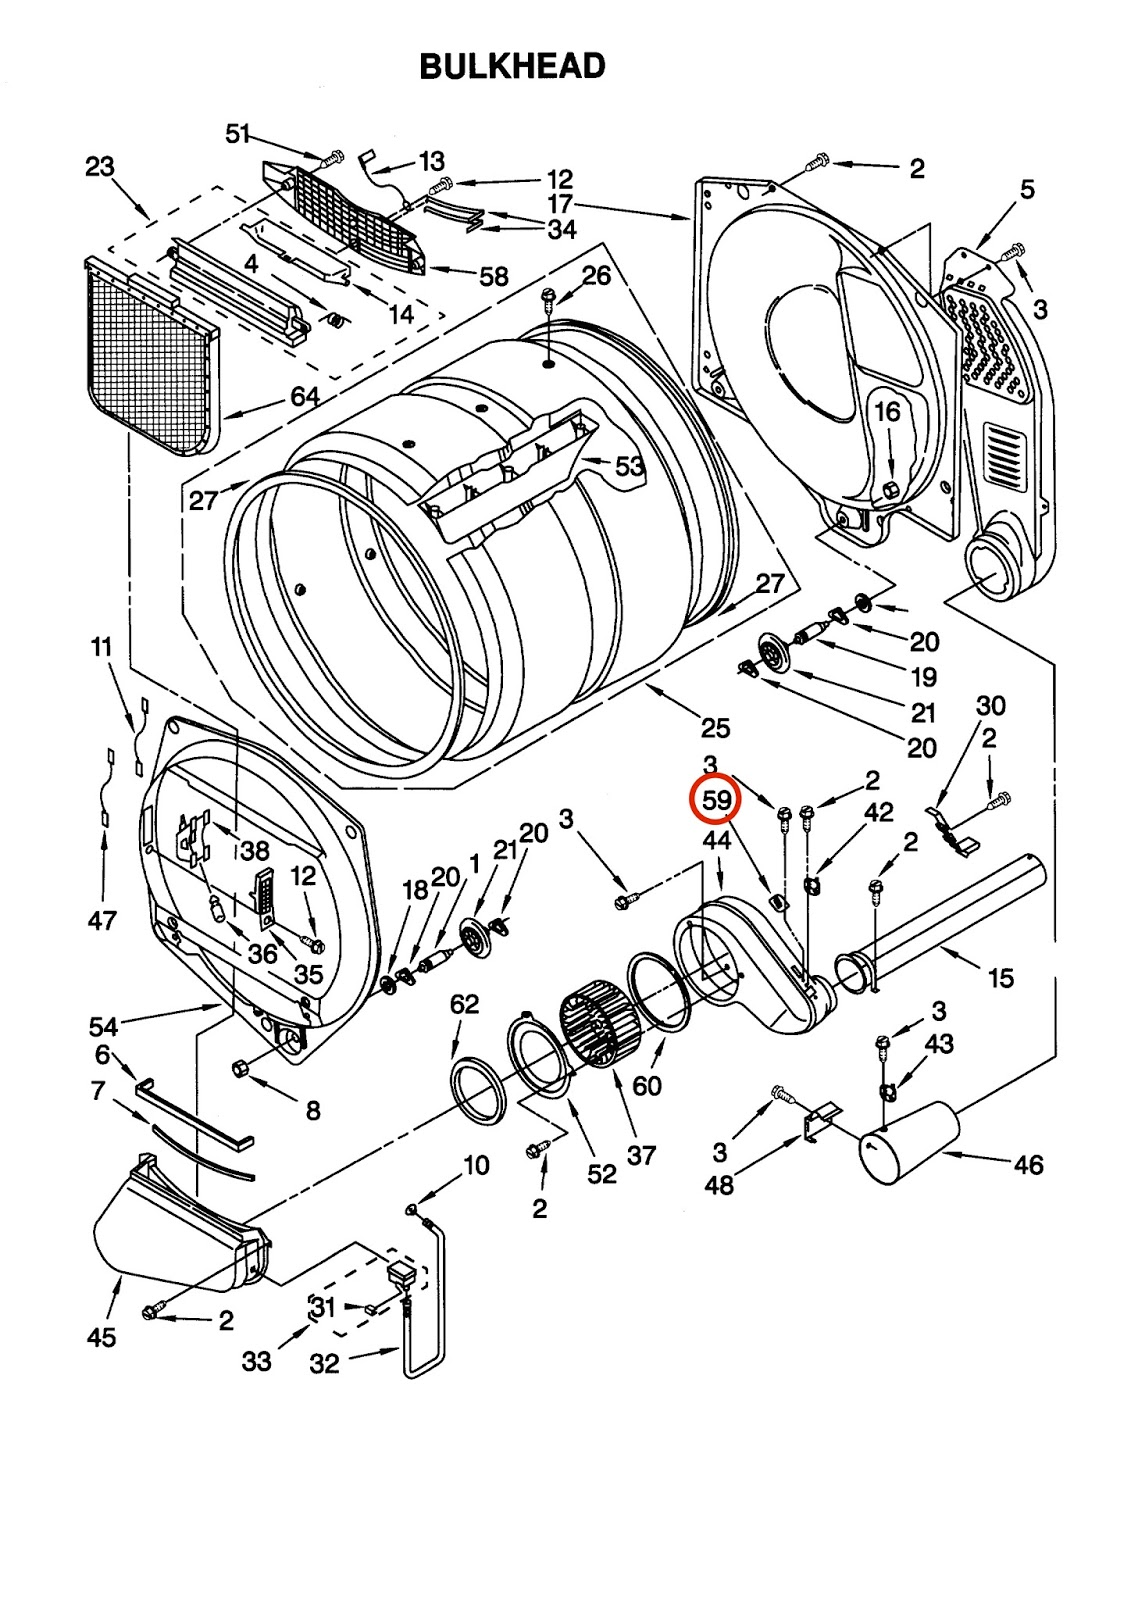 Kenmore 90 Series Dryer Parts Diagram Car Security System Wiring How To Fix A Gas That Will Not